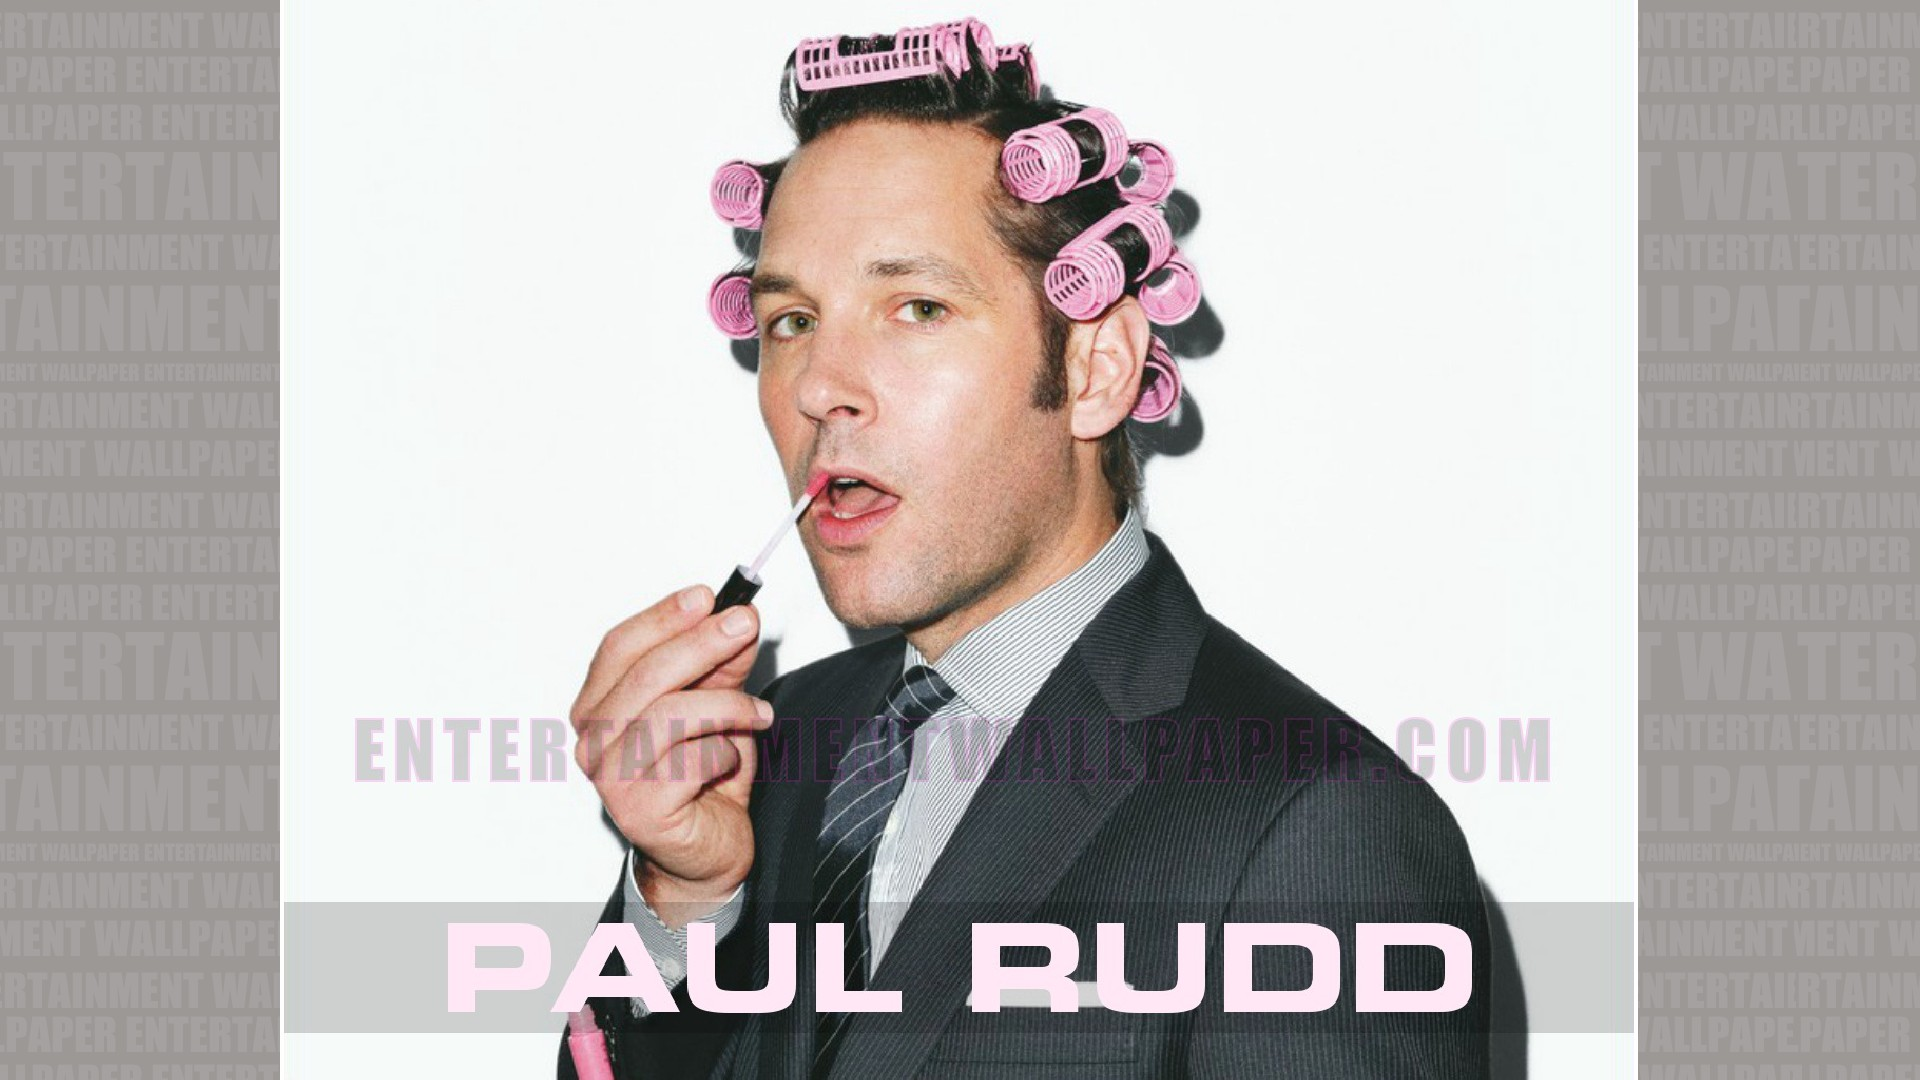 Paul Rudd Wallpaper - Original size, download now.